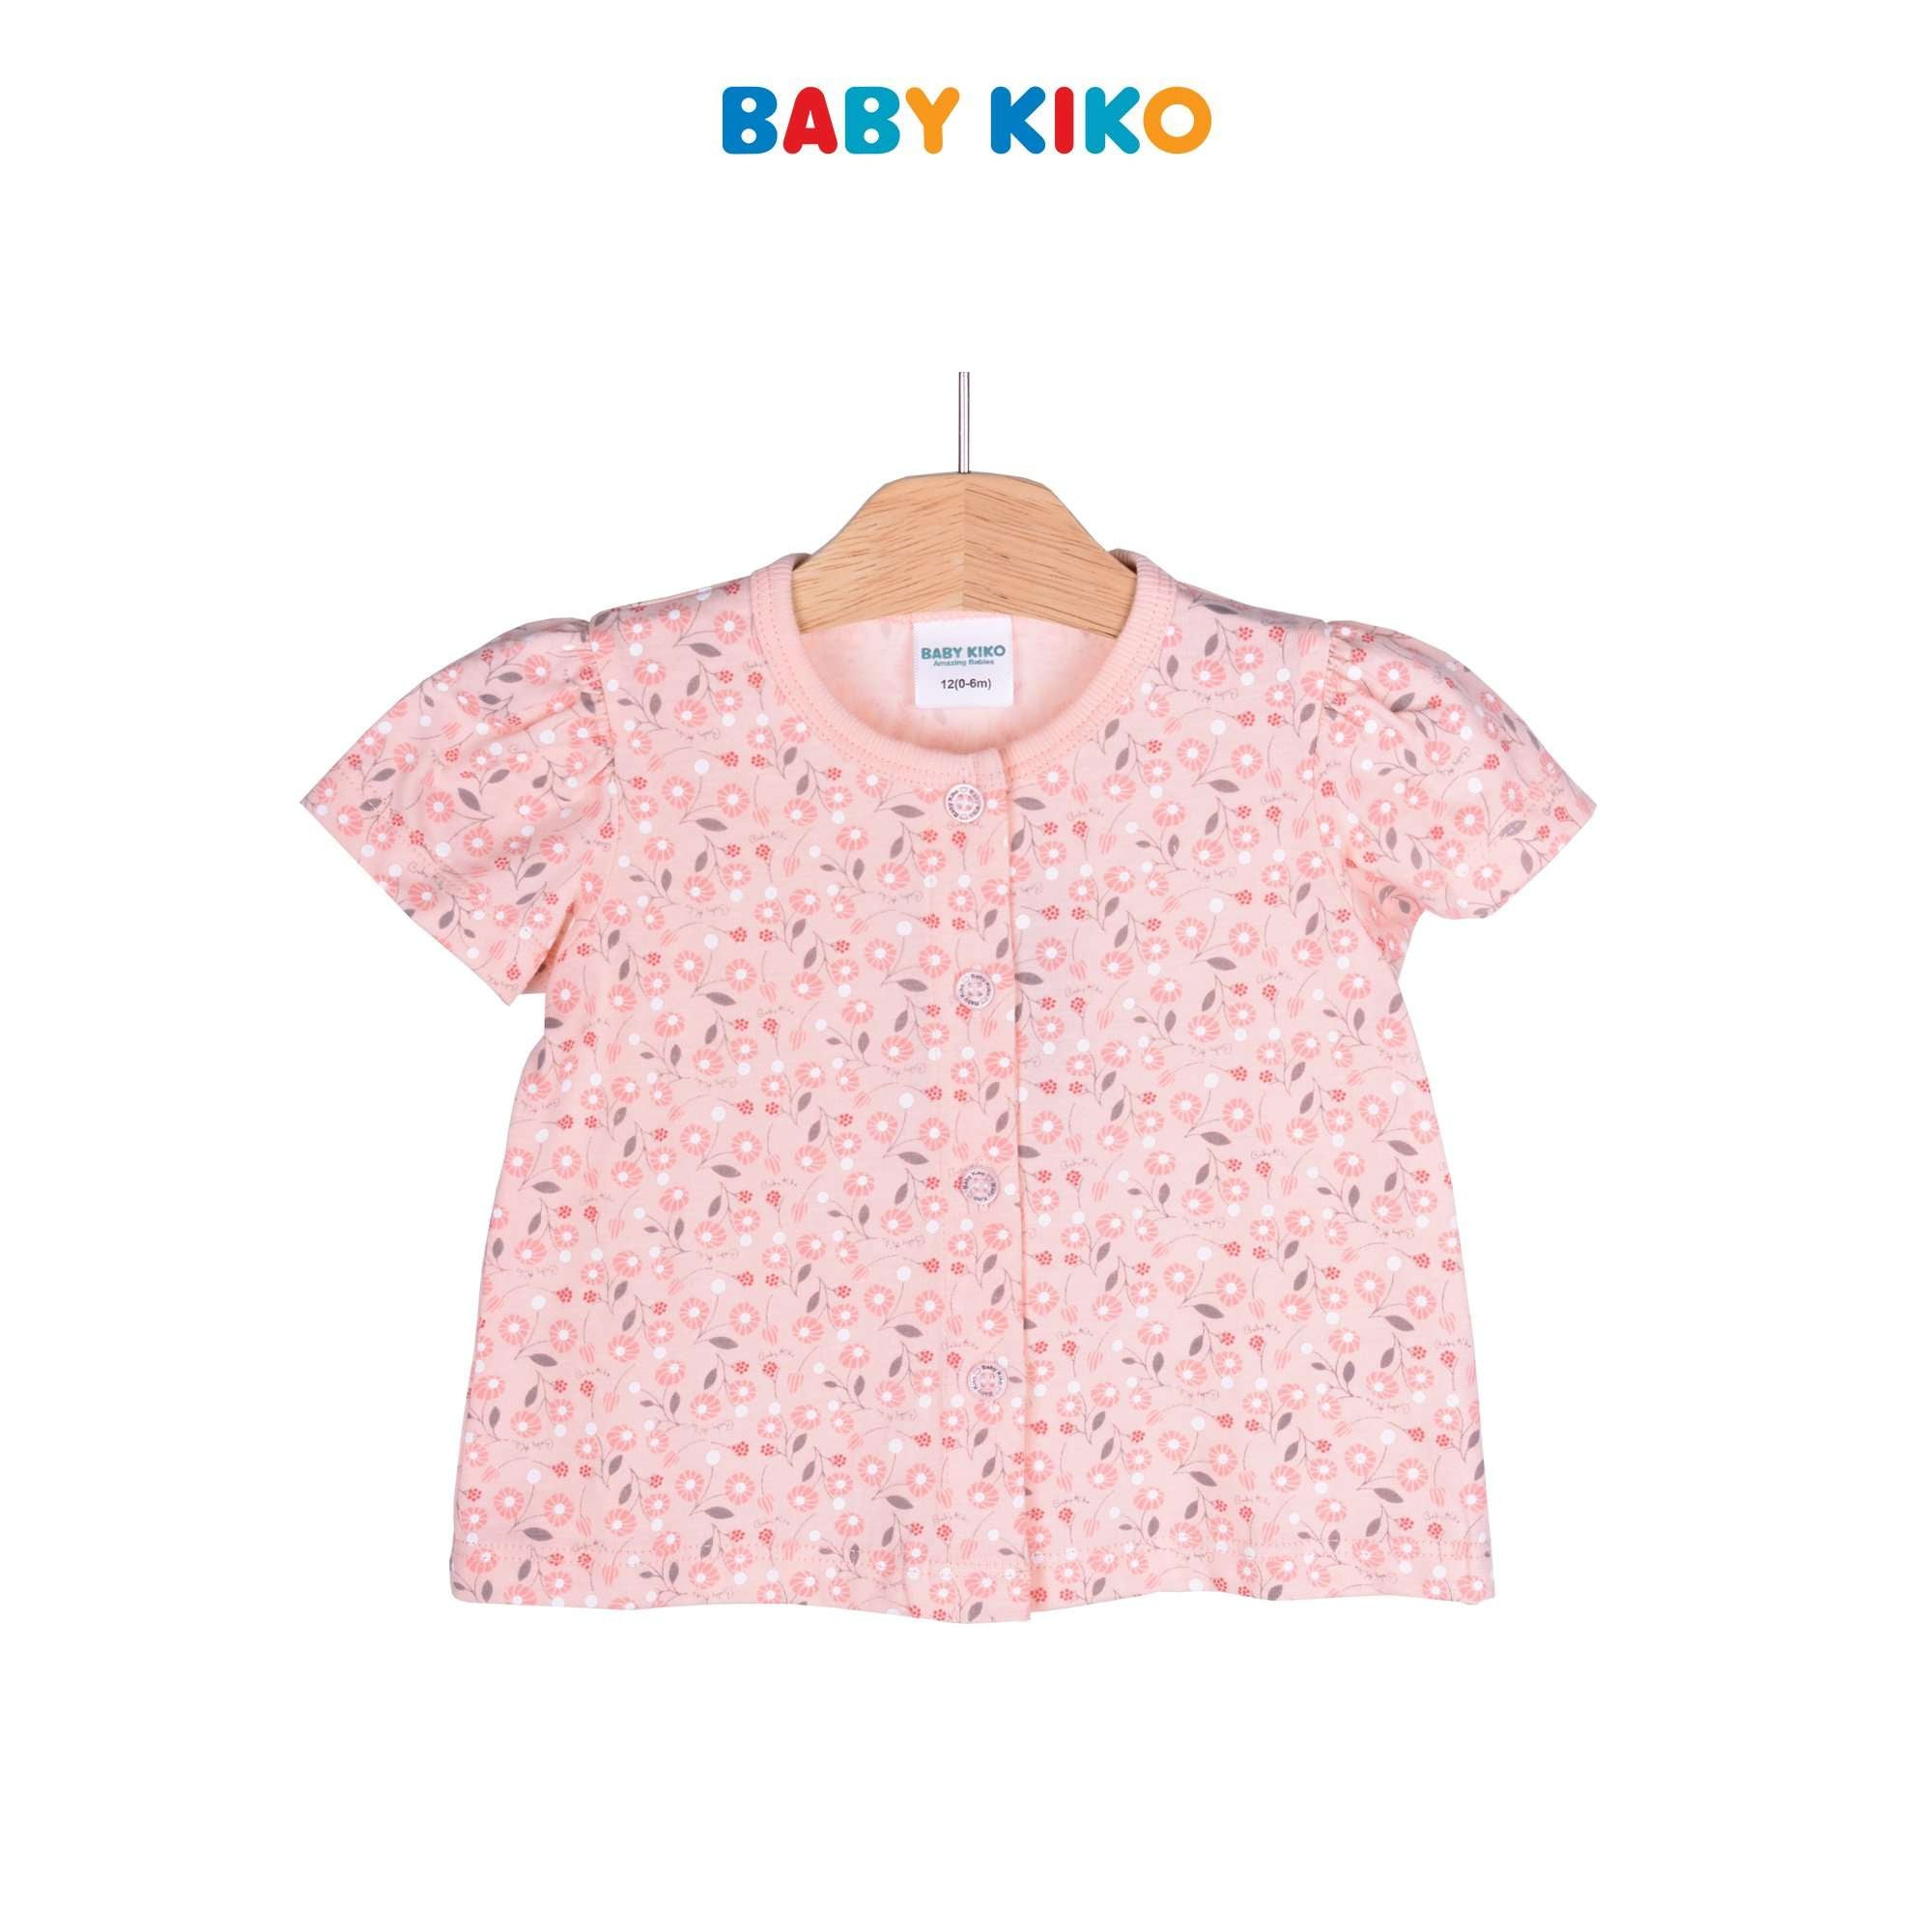 Baby KIKO Baby Girl Short Sleeve Long Pants Suit 320142-421 : Buy Baby KIKO online at CMG.MY